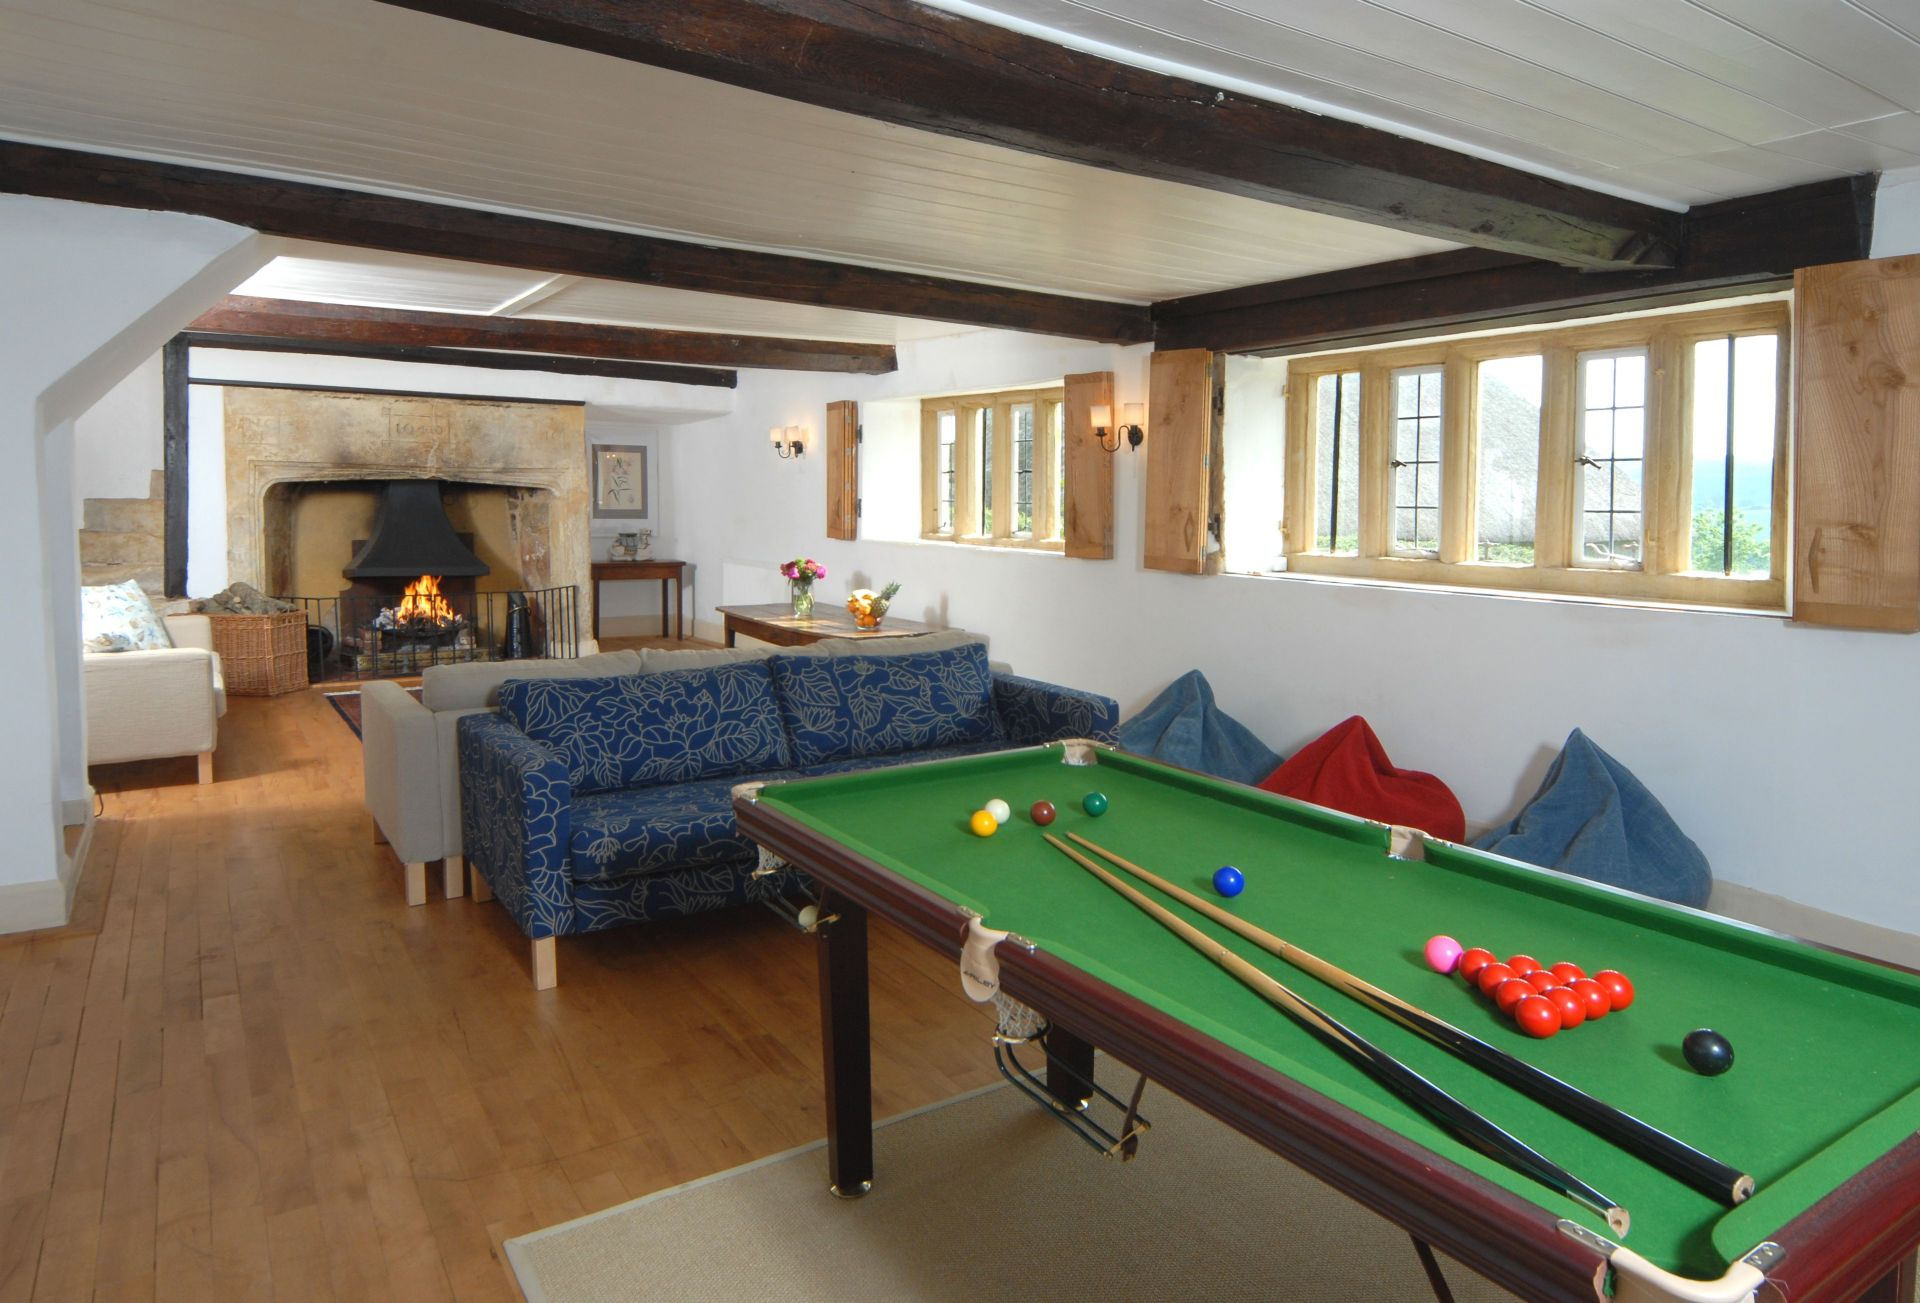 Ground floor: Sitting room - a view of the pool table looking towards the fireplace